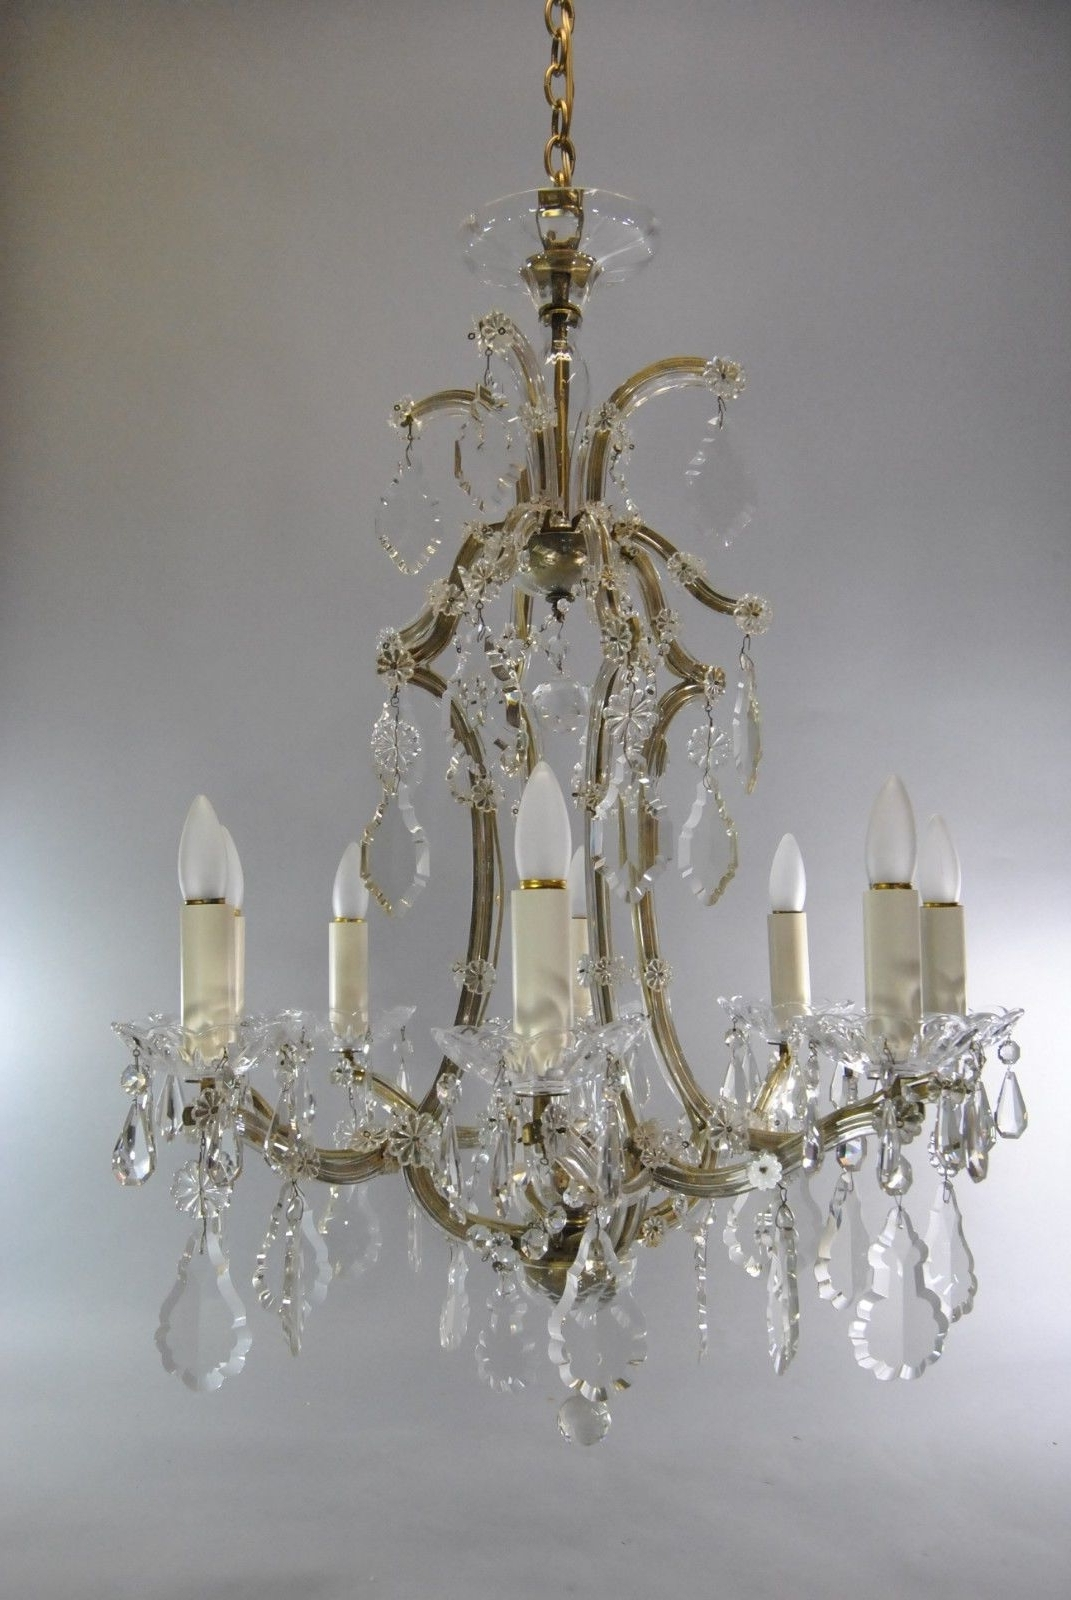 2019 Chandelier: Stunning French Crystal Chandelier French Empire Pertaining To Vintage French Chandeliers (View 1 of 20)